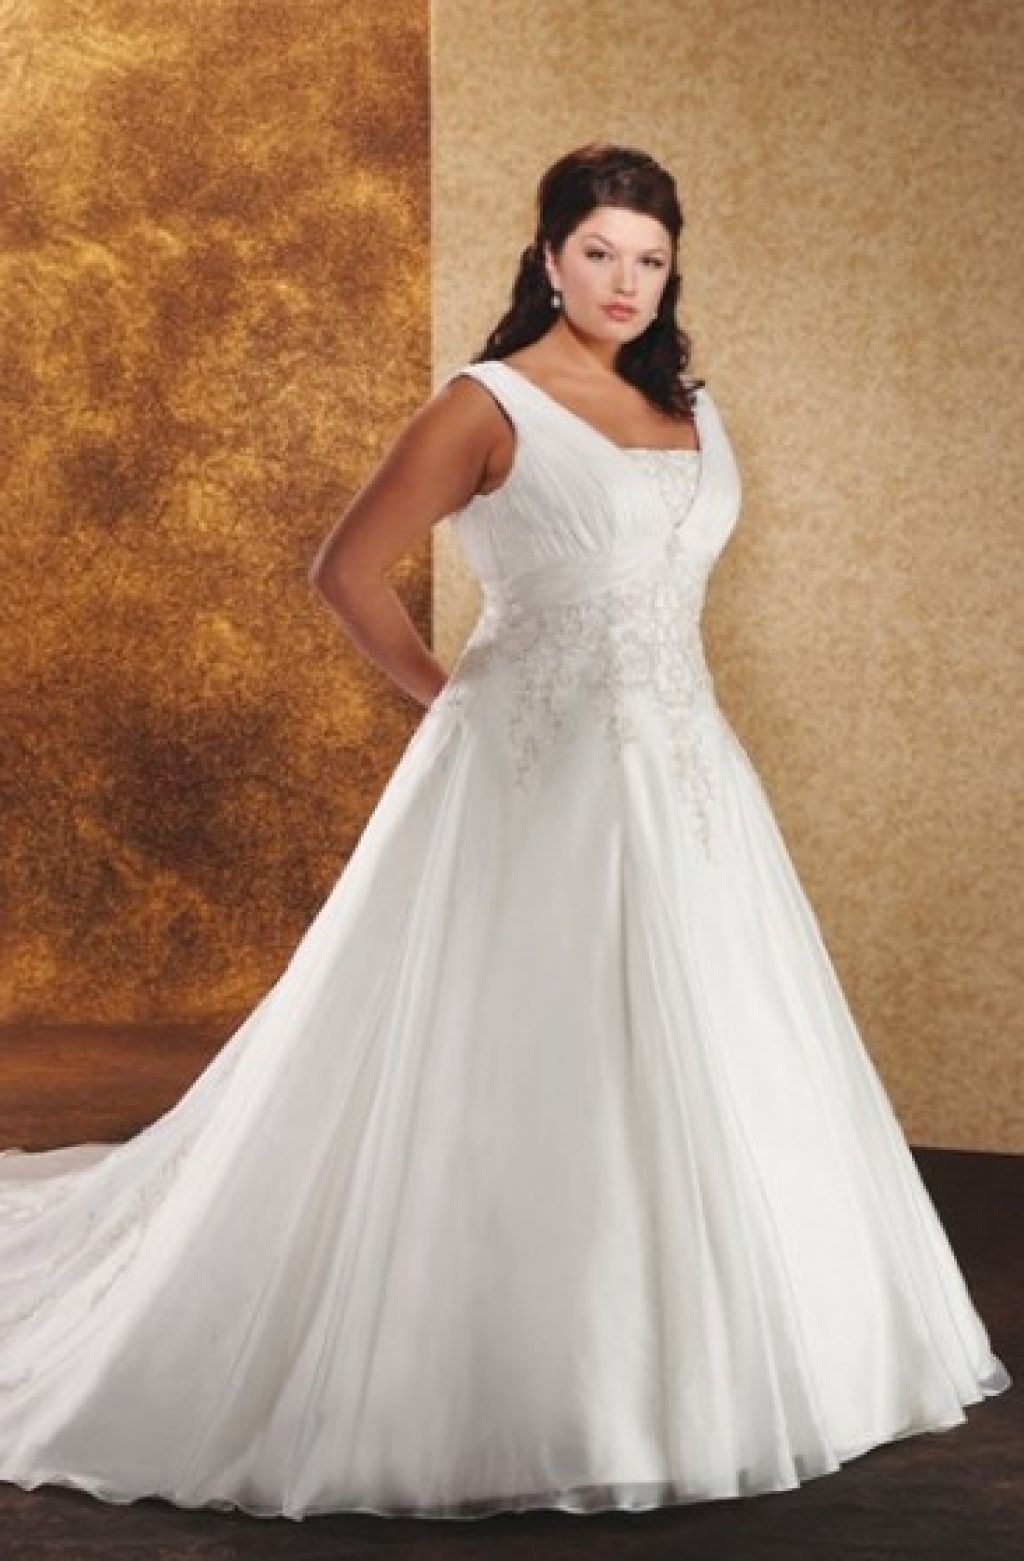 100+ Dresses for Larger Ladies for Weddings - Dresses for Wedding ...